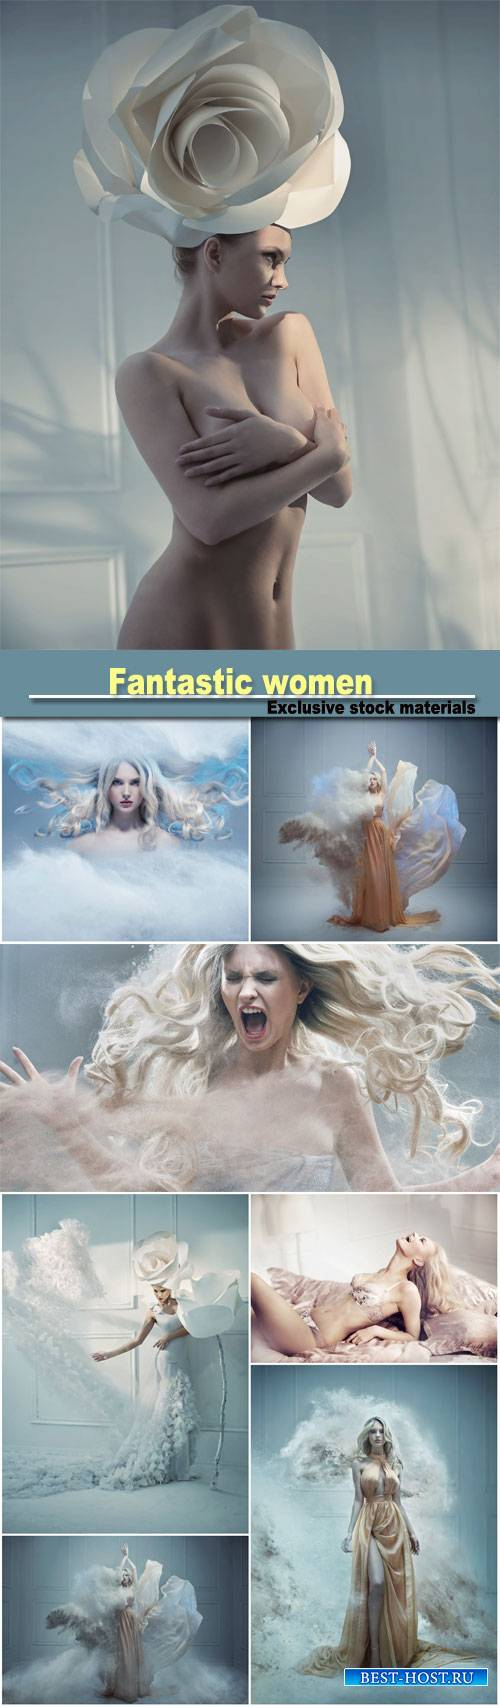 Fantastic women in different images